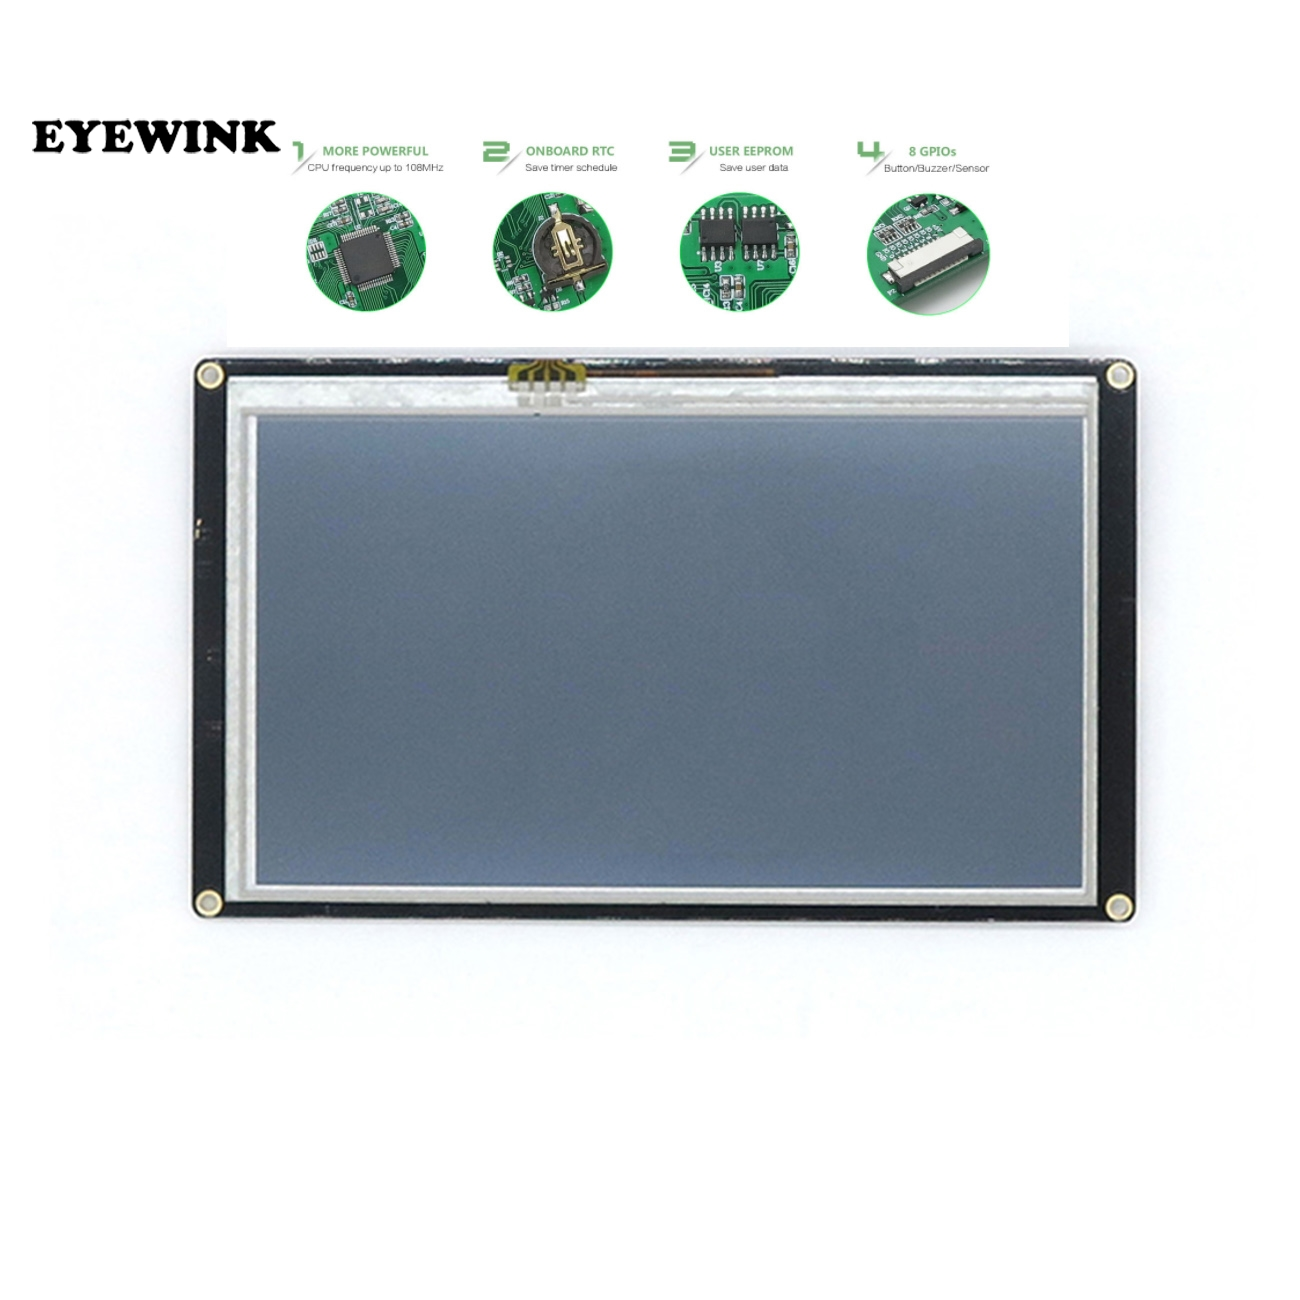 7 0 Nextion Enhanced HMI Intelligent Smart USART UART Serial Touch TFT LCD Module Display Panel